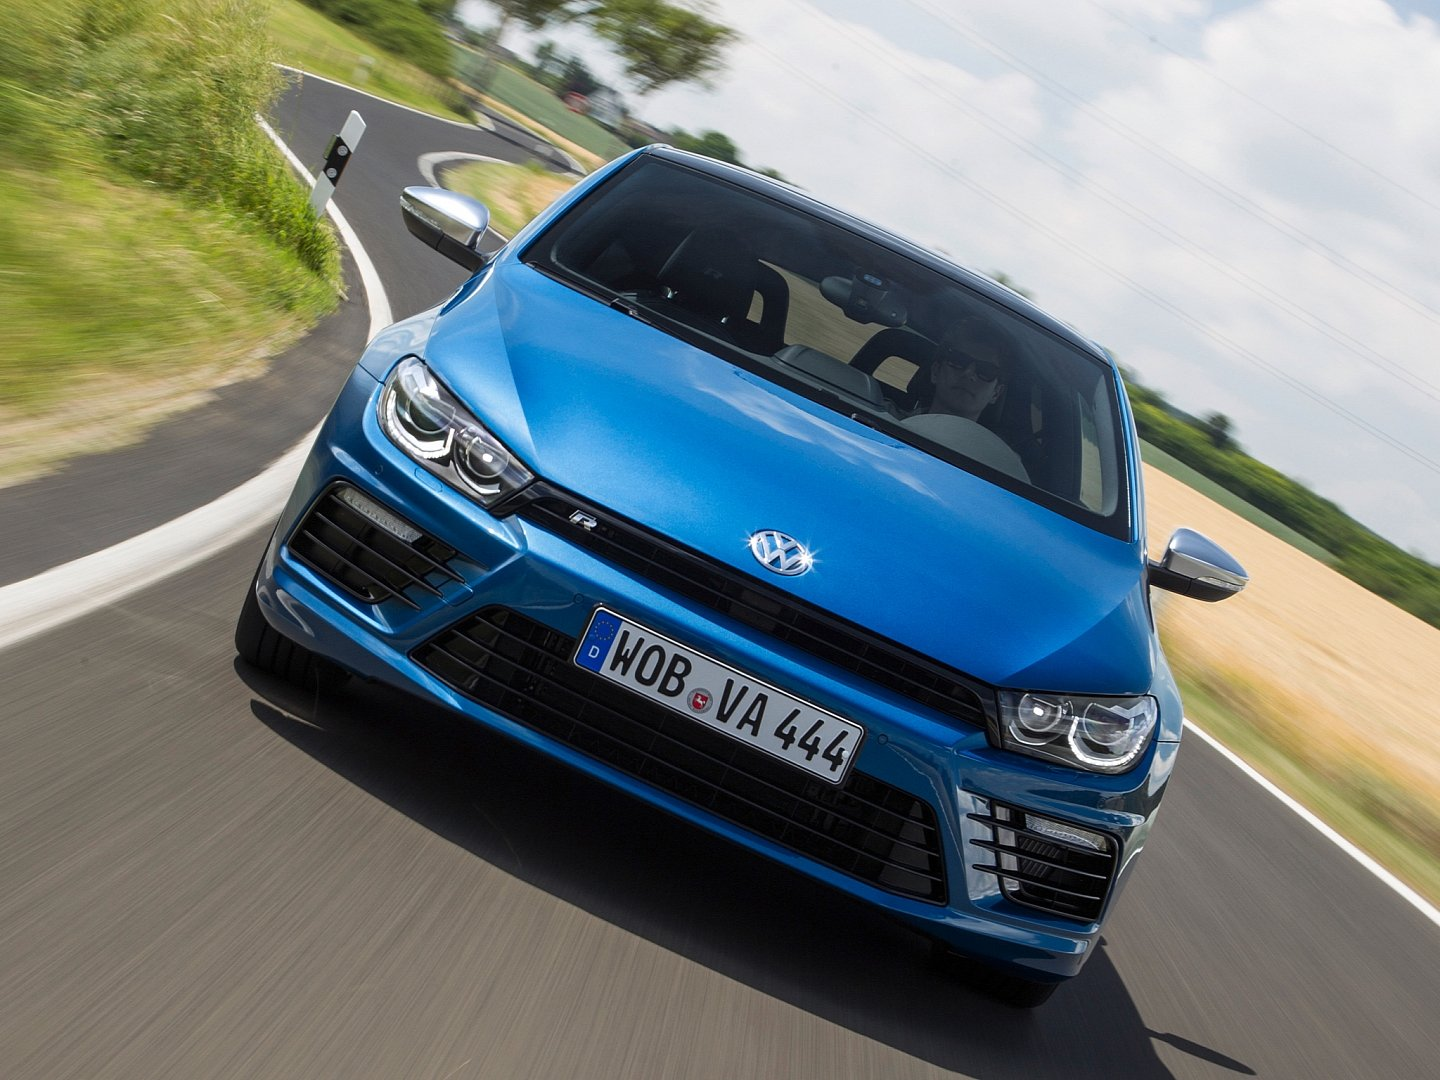 scirocco-radditional-20-ps-accelerates-06-seconds-faster-to-100-km-h-than-its-predecessor-1080p-4